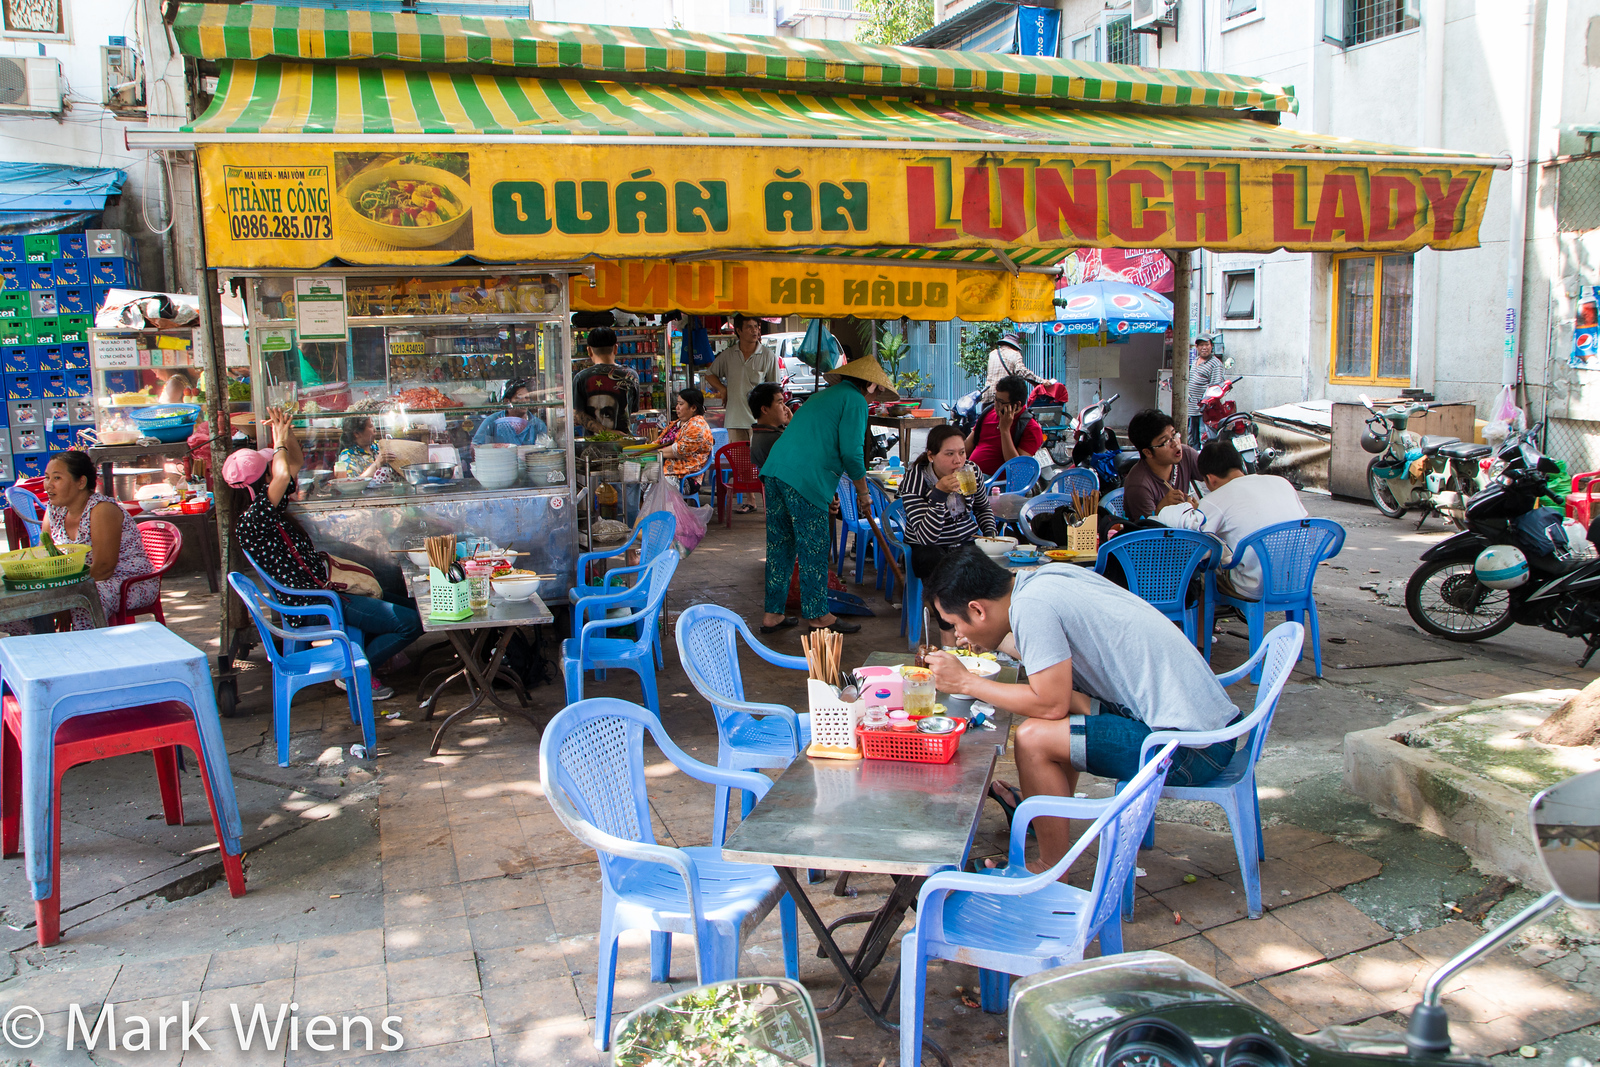 How to get to the Lunch Lady in Saigon